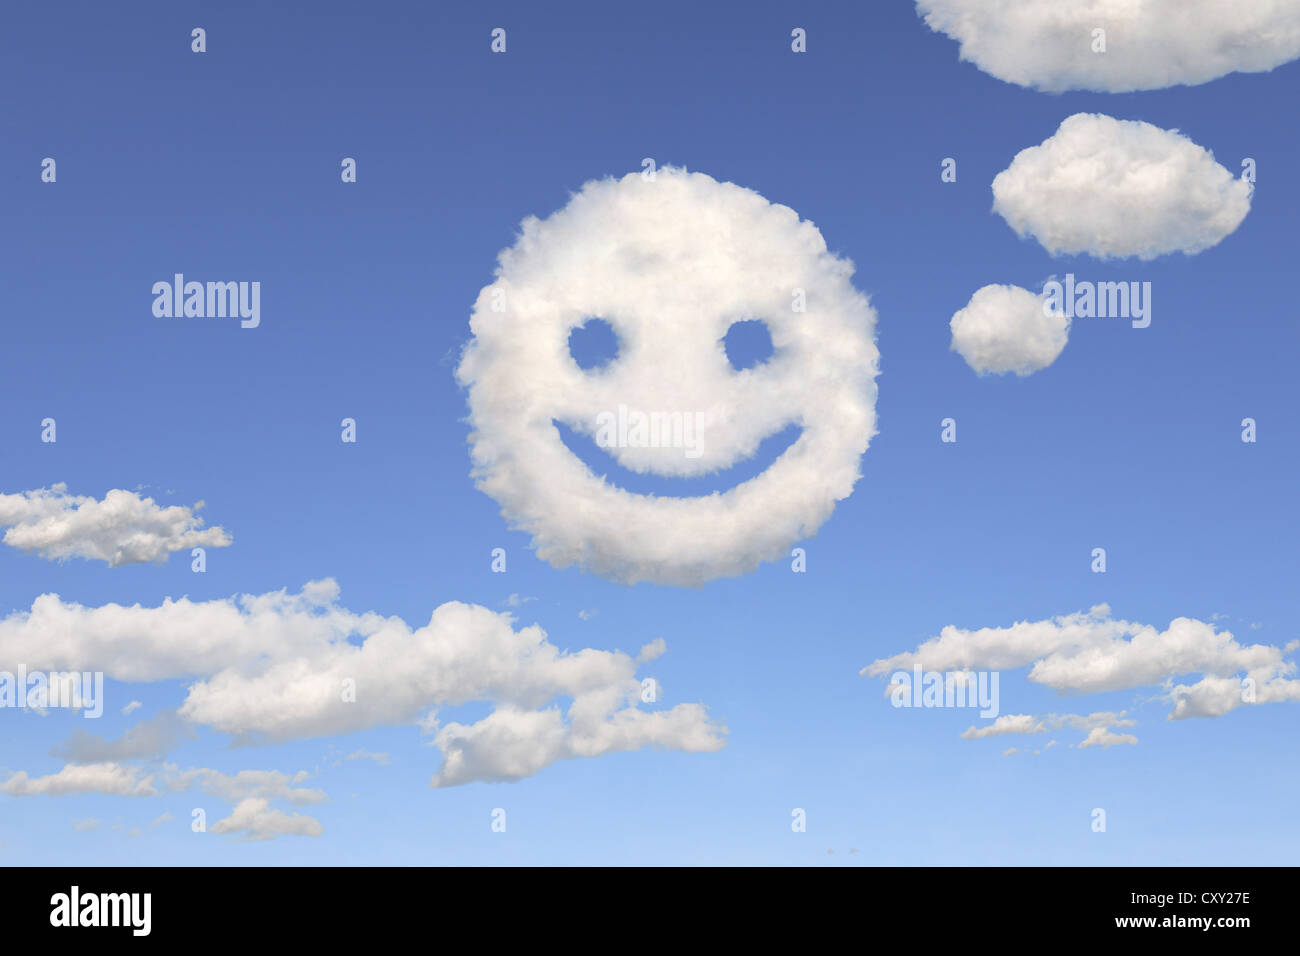 Clouds Shaped Like A Smiley Face Illustration Stock Photo 50996274